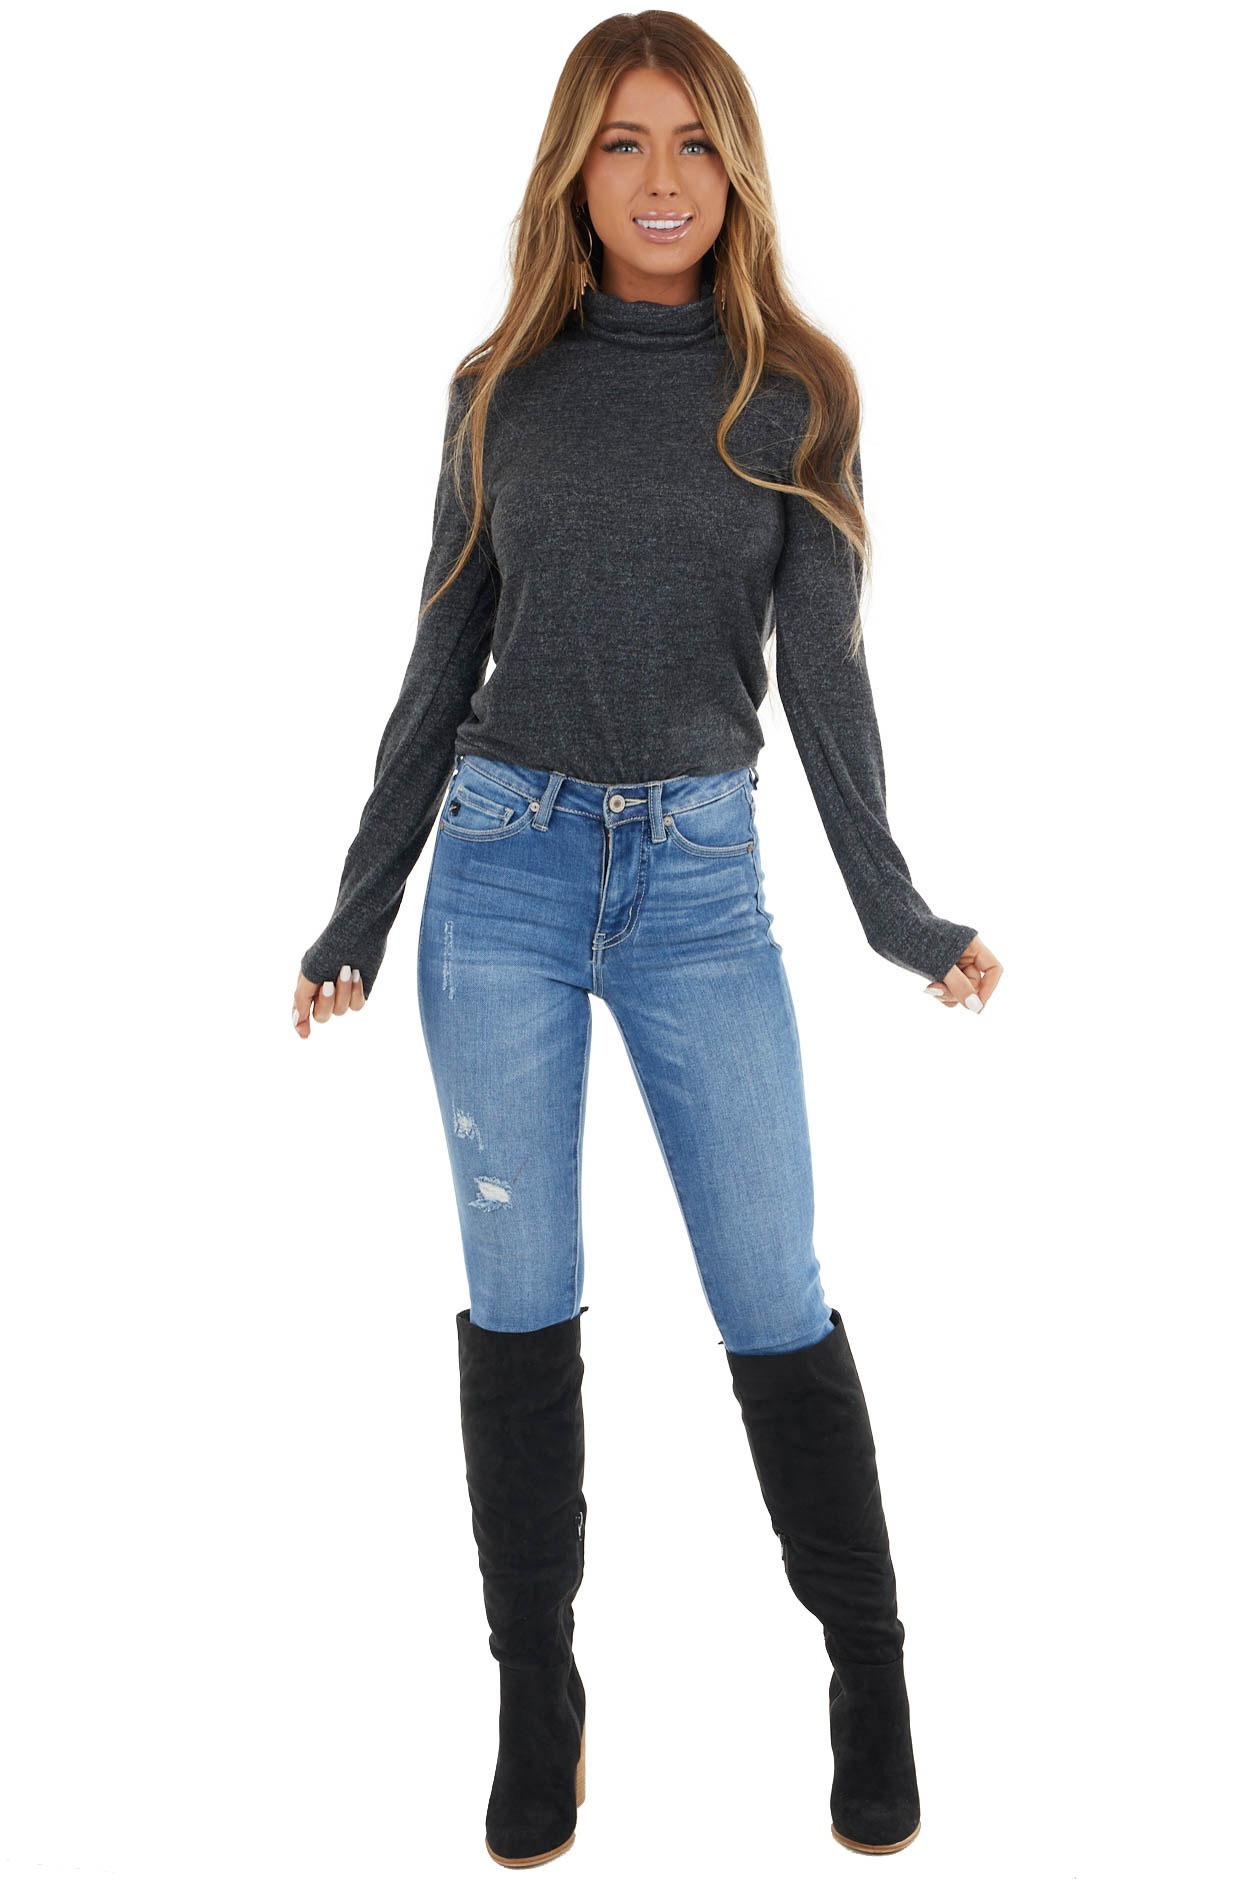 Heathered Black Fitted Long Sleeve Top with Turtleneck